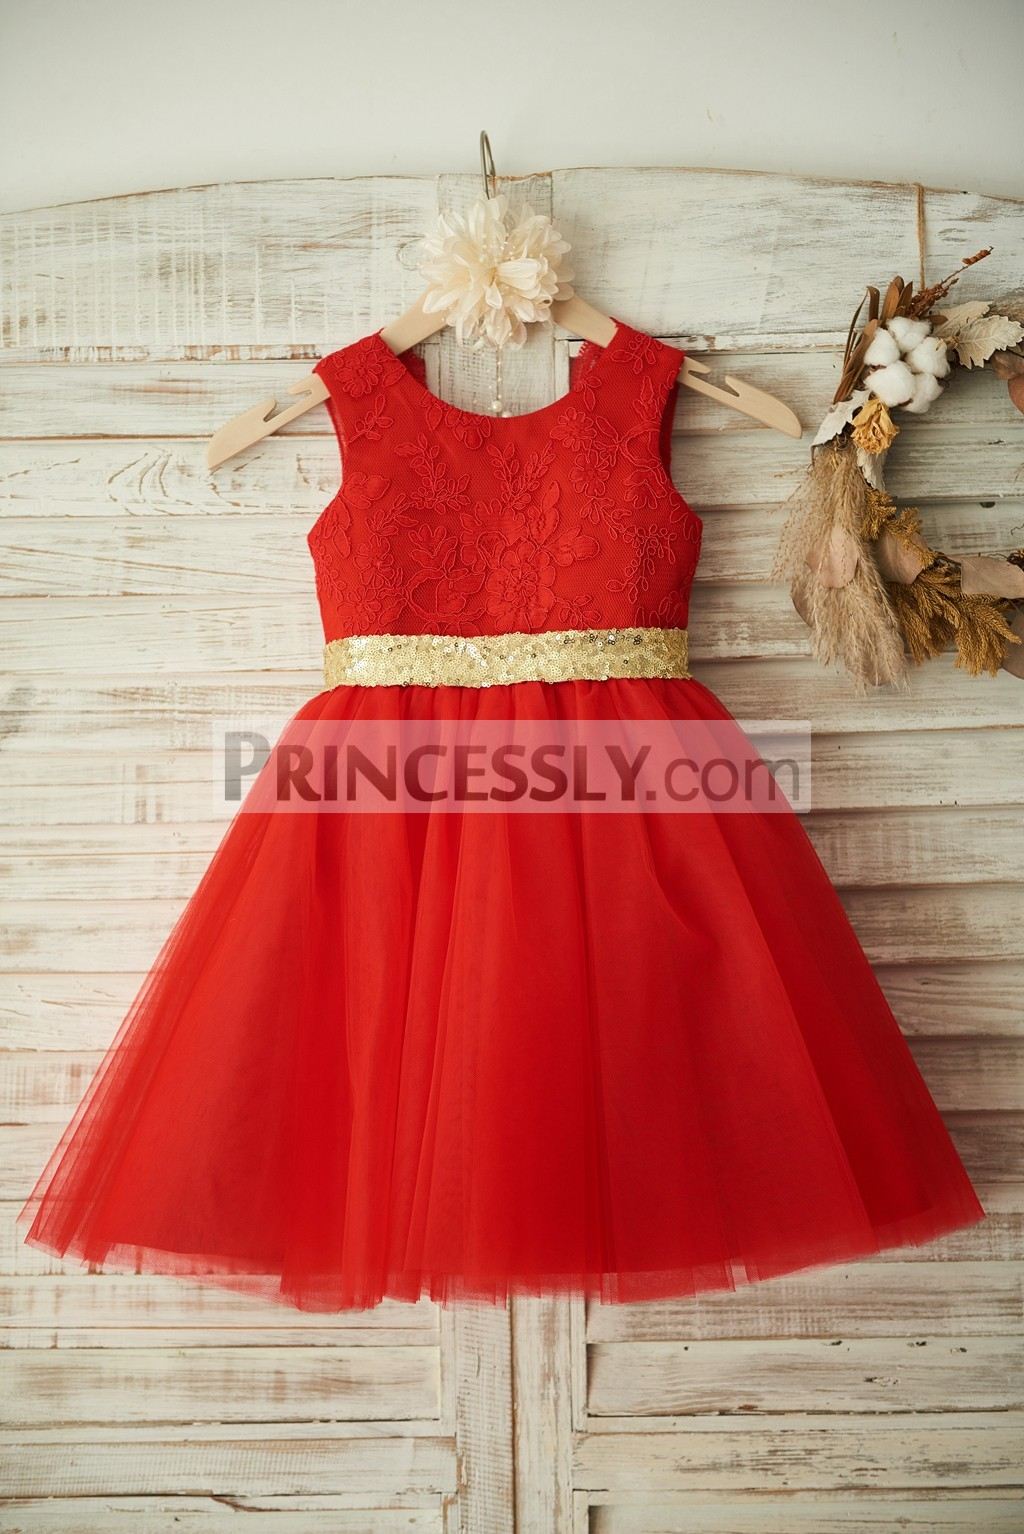 Delicate Floral Lace Pattern Fully Lined TUTU Princess Little Girl Dress